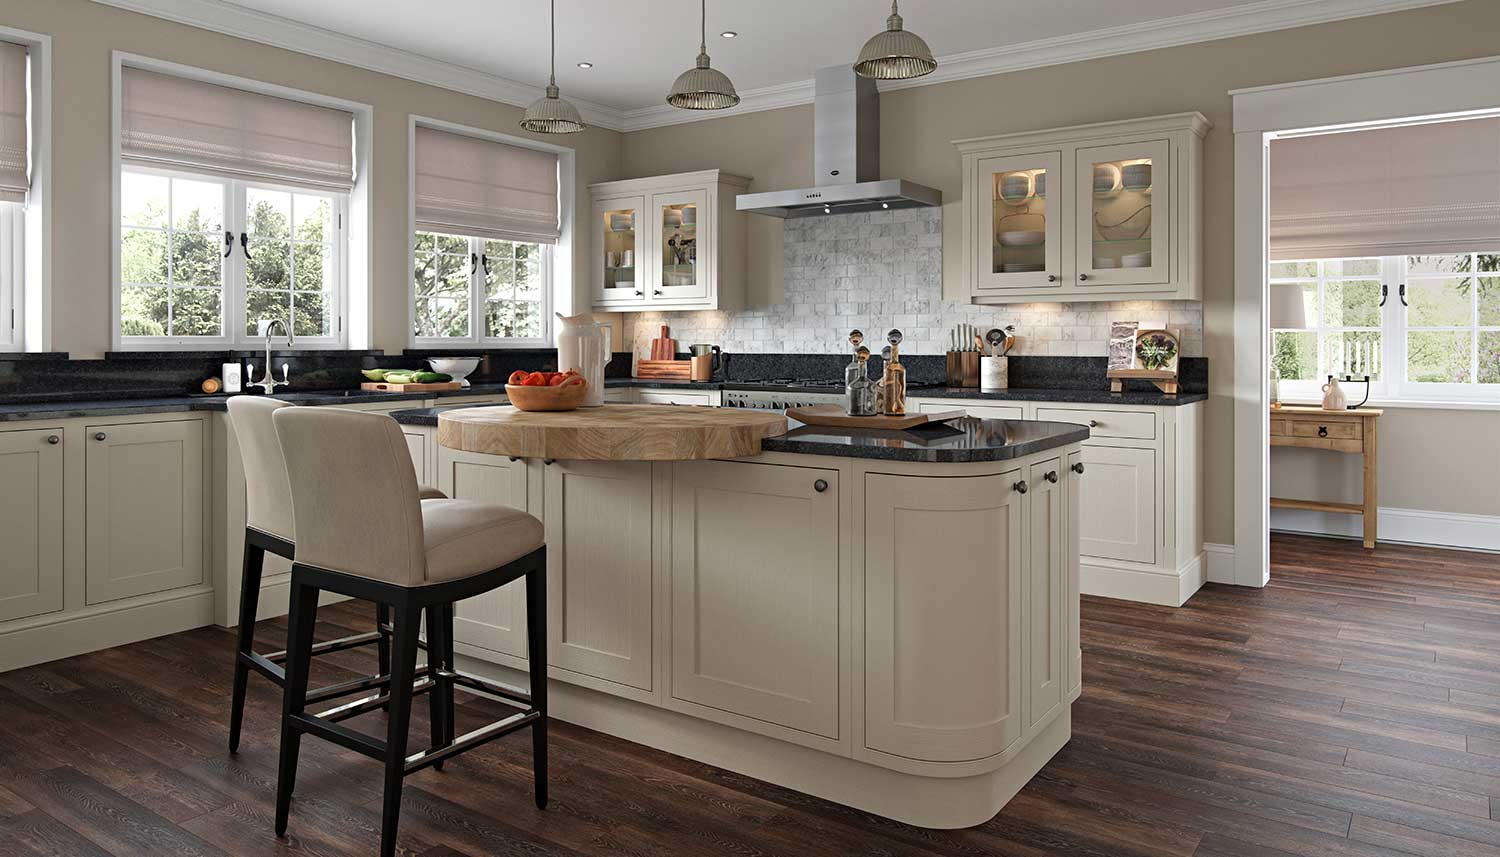 Shaker kitchen with feature island shown In Mussel